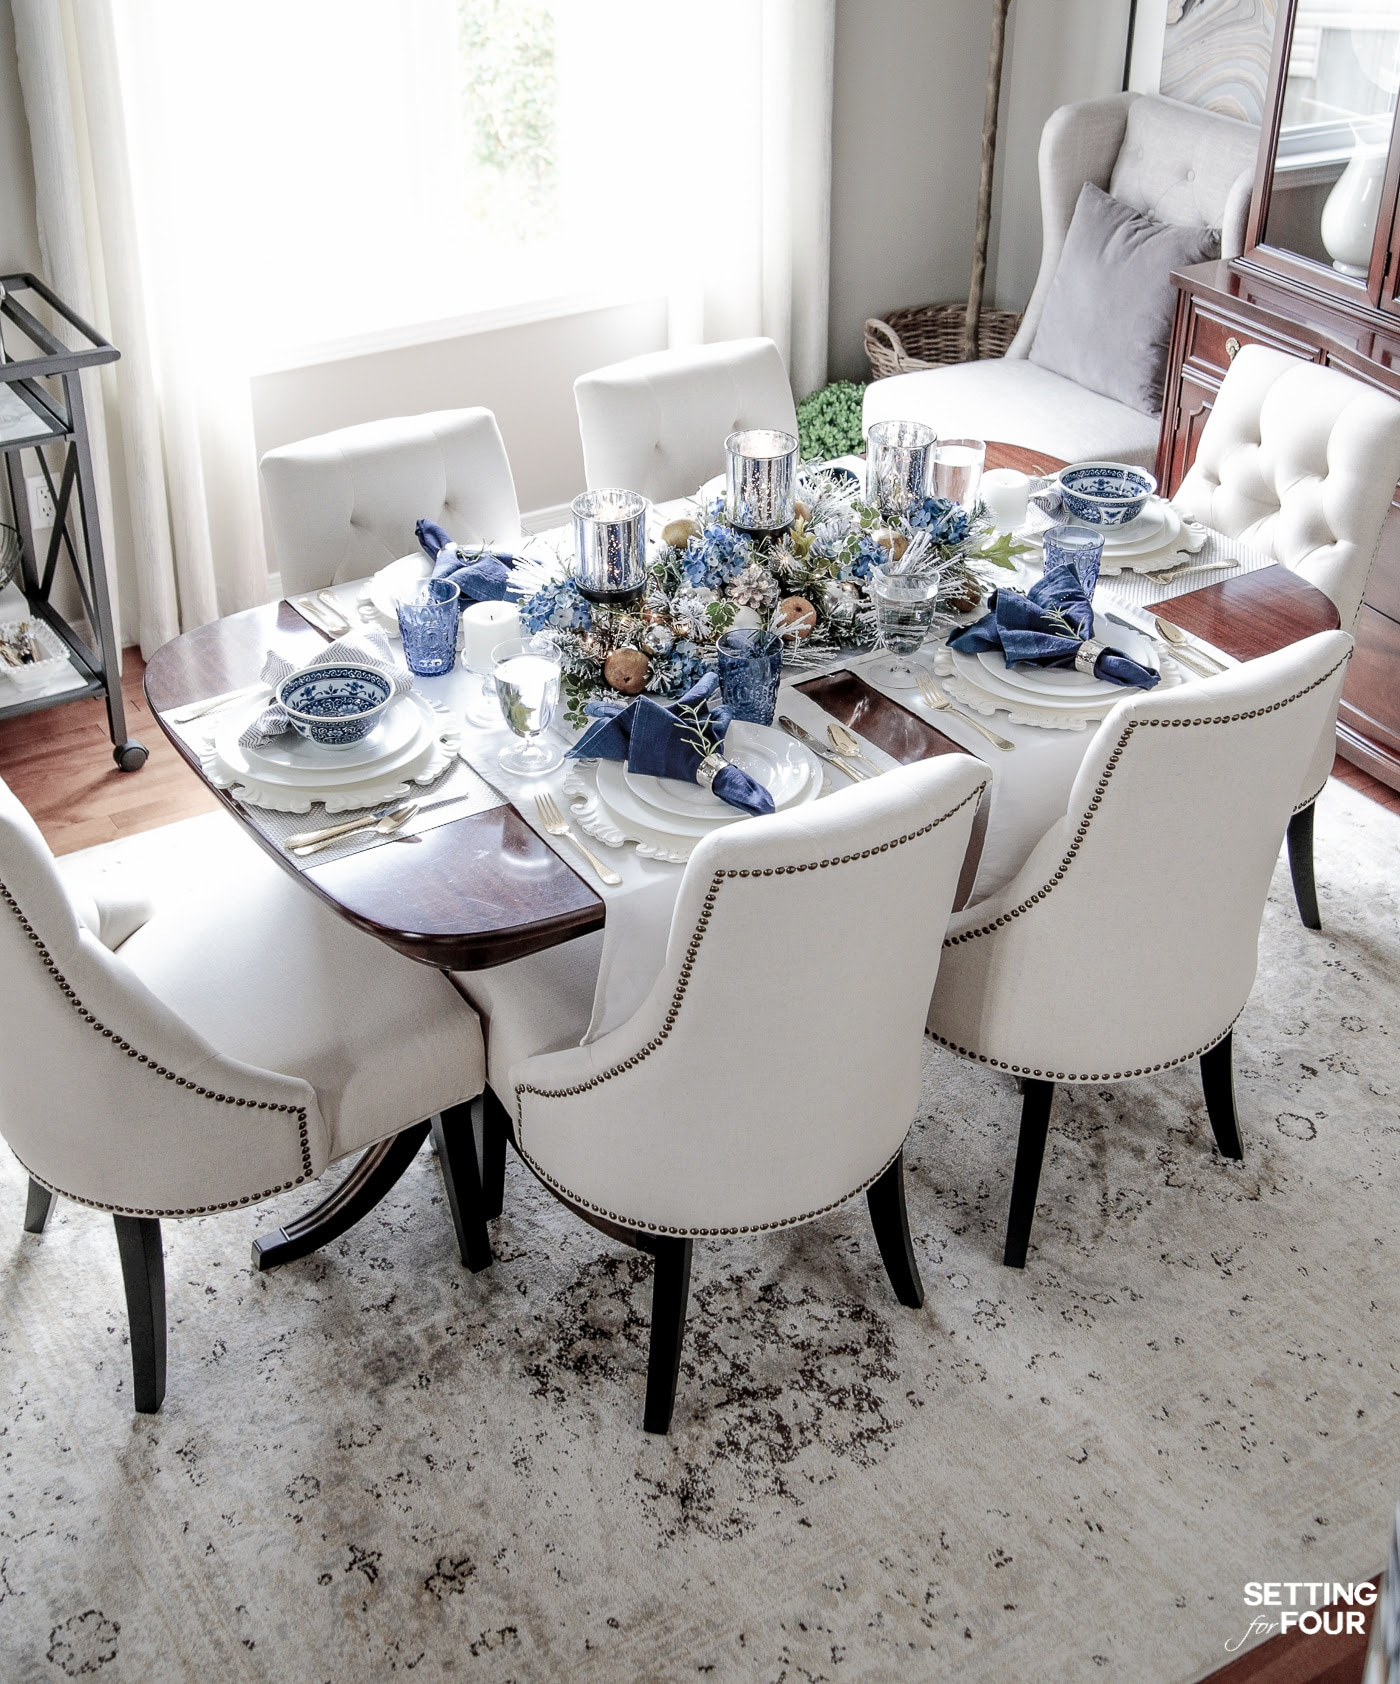 My dining room. See my dining room furniture and decor - product sources for everything!